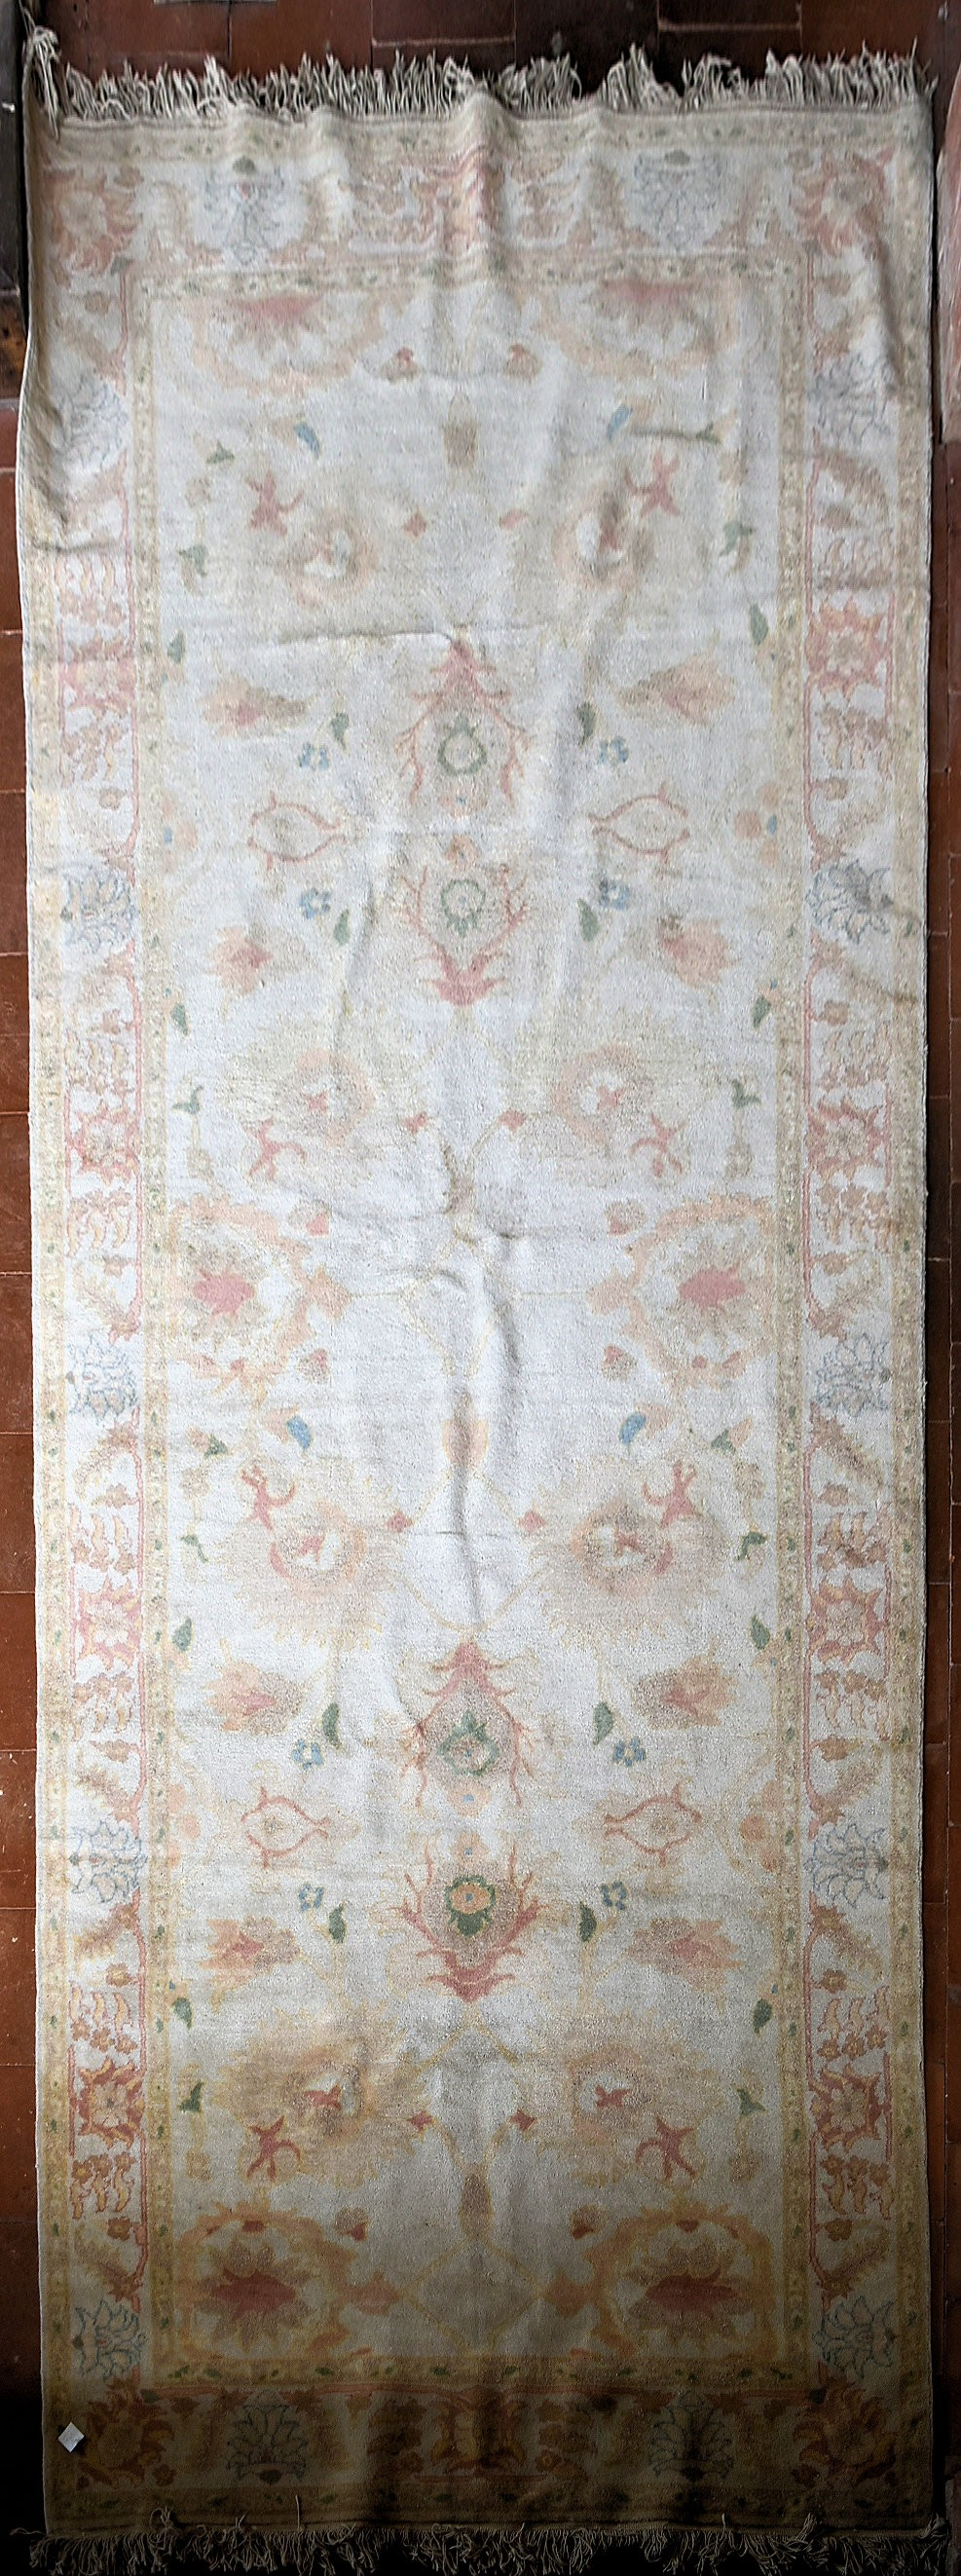 A Ziegler design carpet with repeating floral motifs across the beige field contained by a lotus and